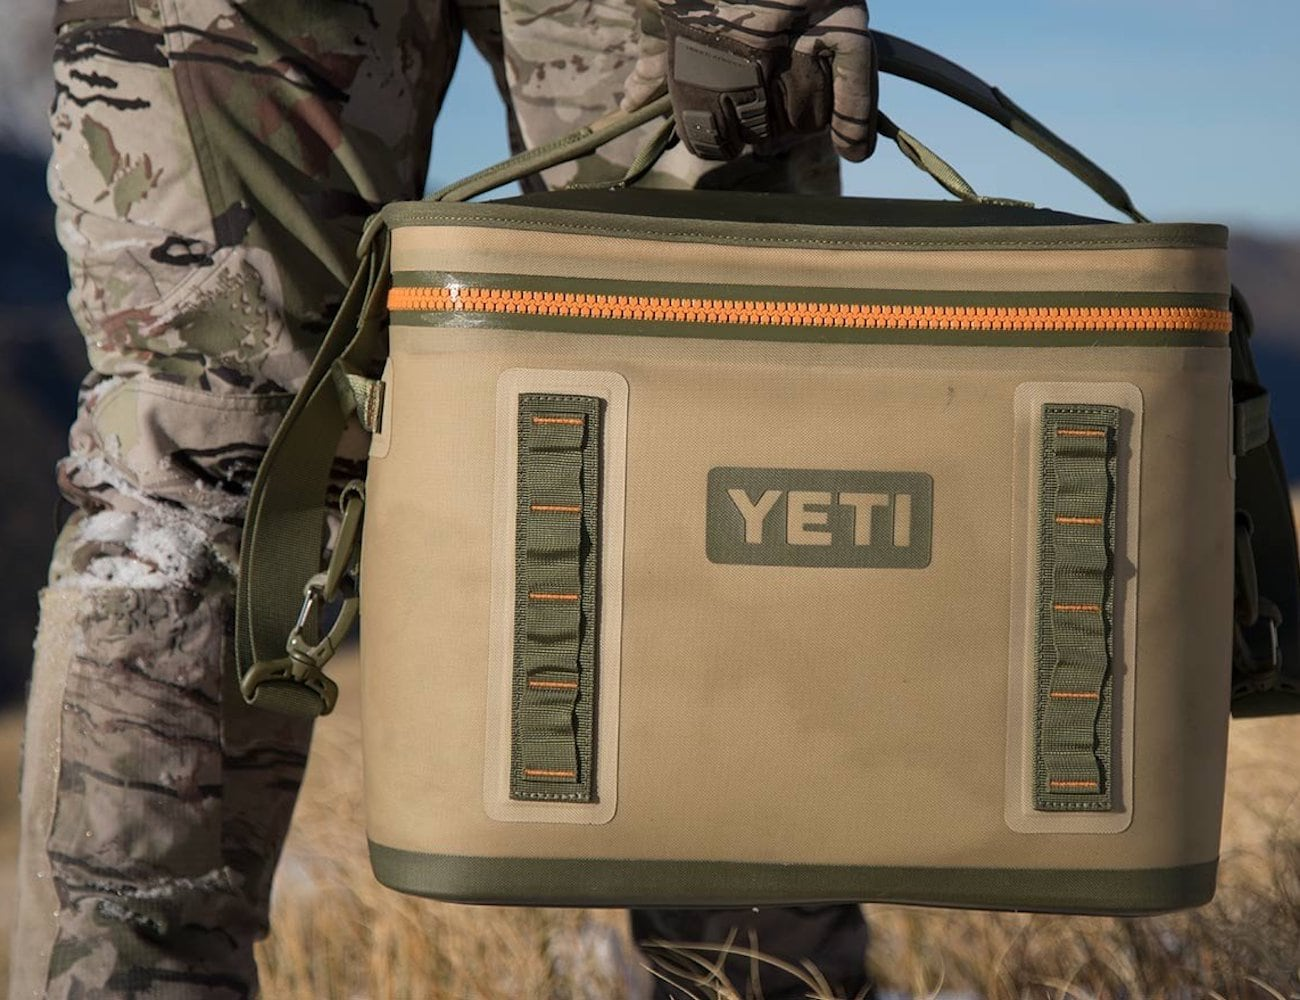 YETI Hopper Flip Portable Soft Cooler keeps its contents colder for longer